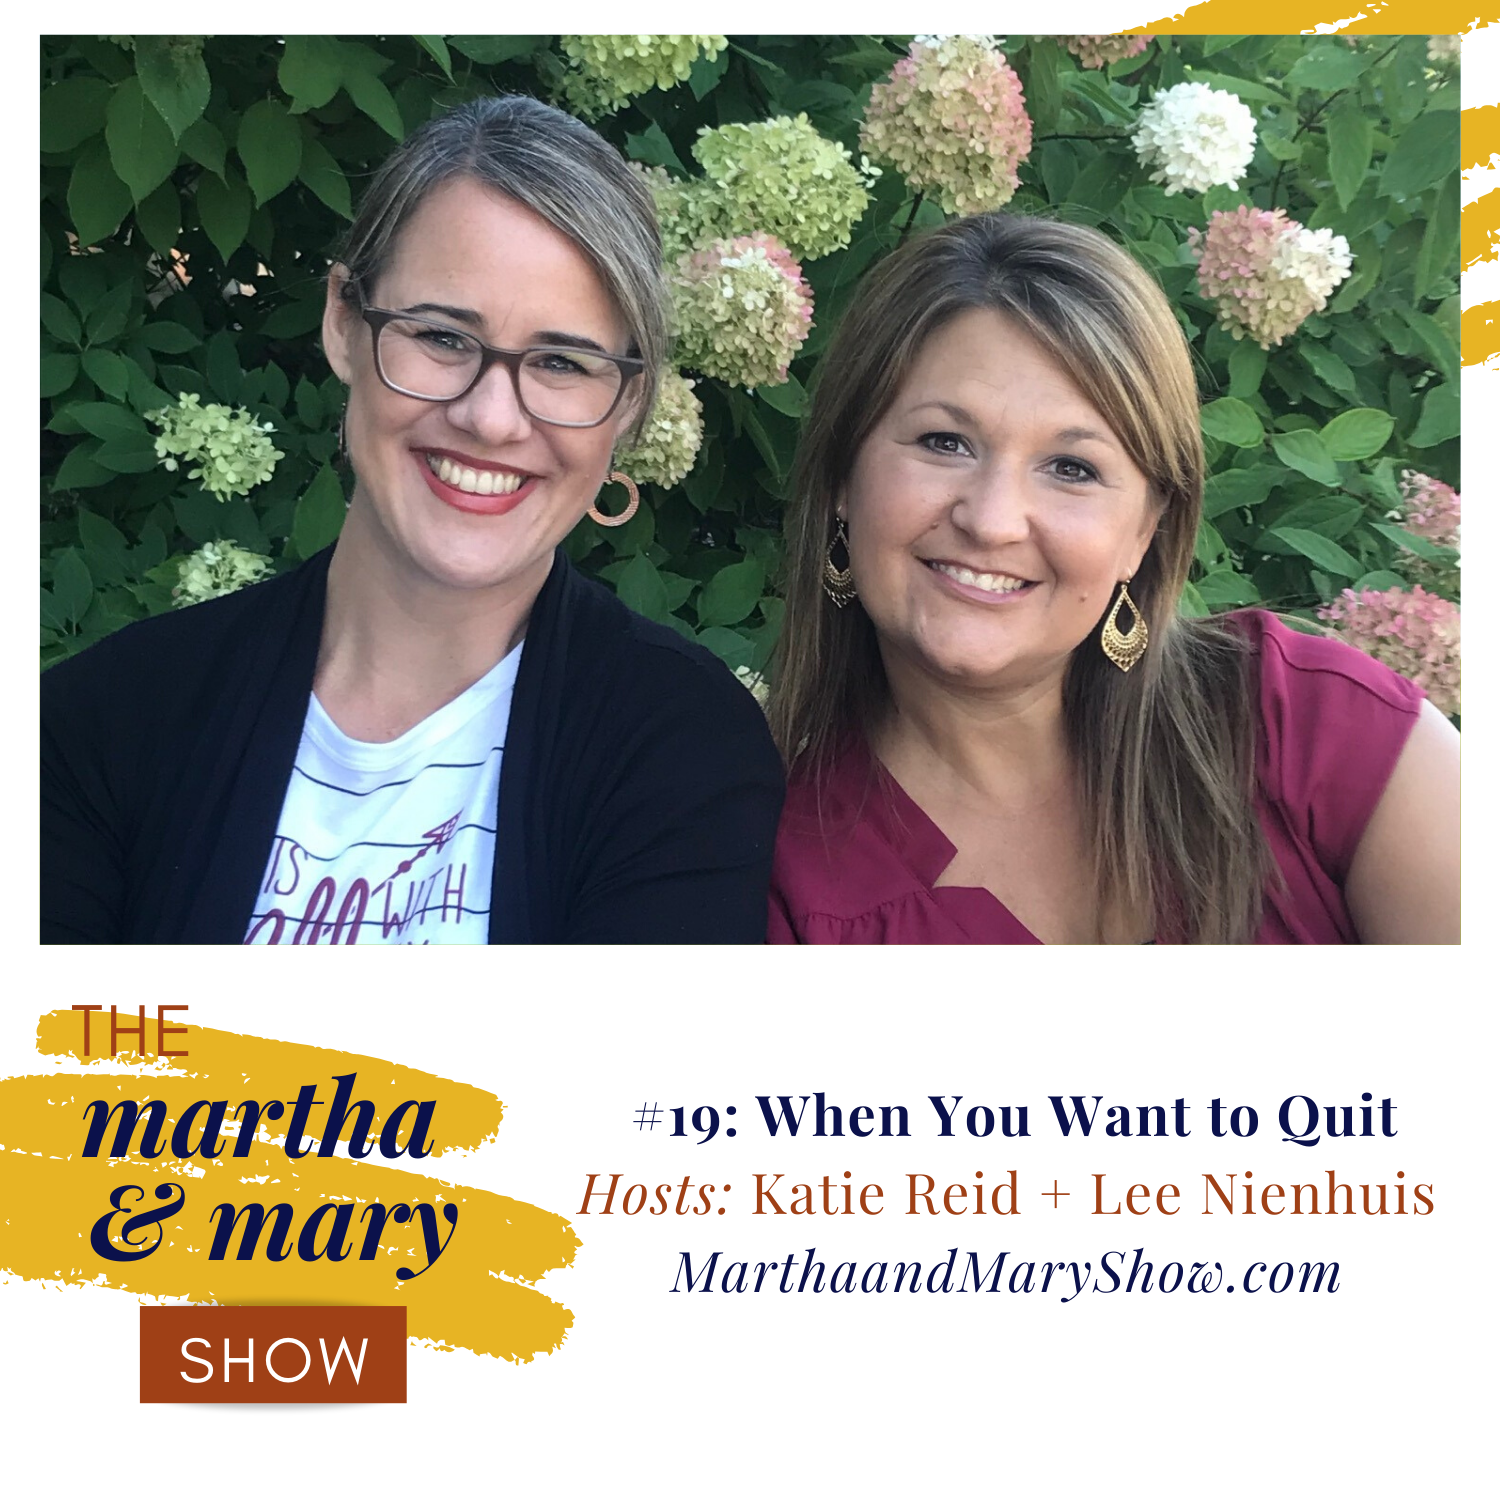 When You Want to Quit Episode 19 Martha Mary Show Katie Reid Lee Nienhuis